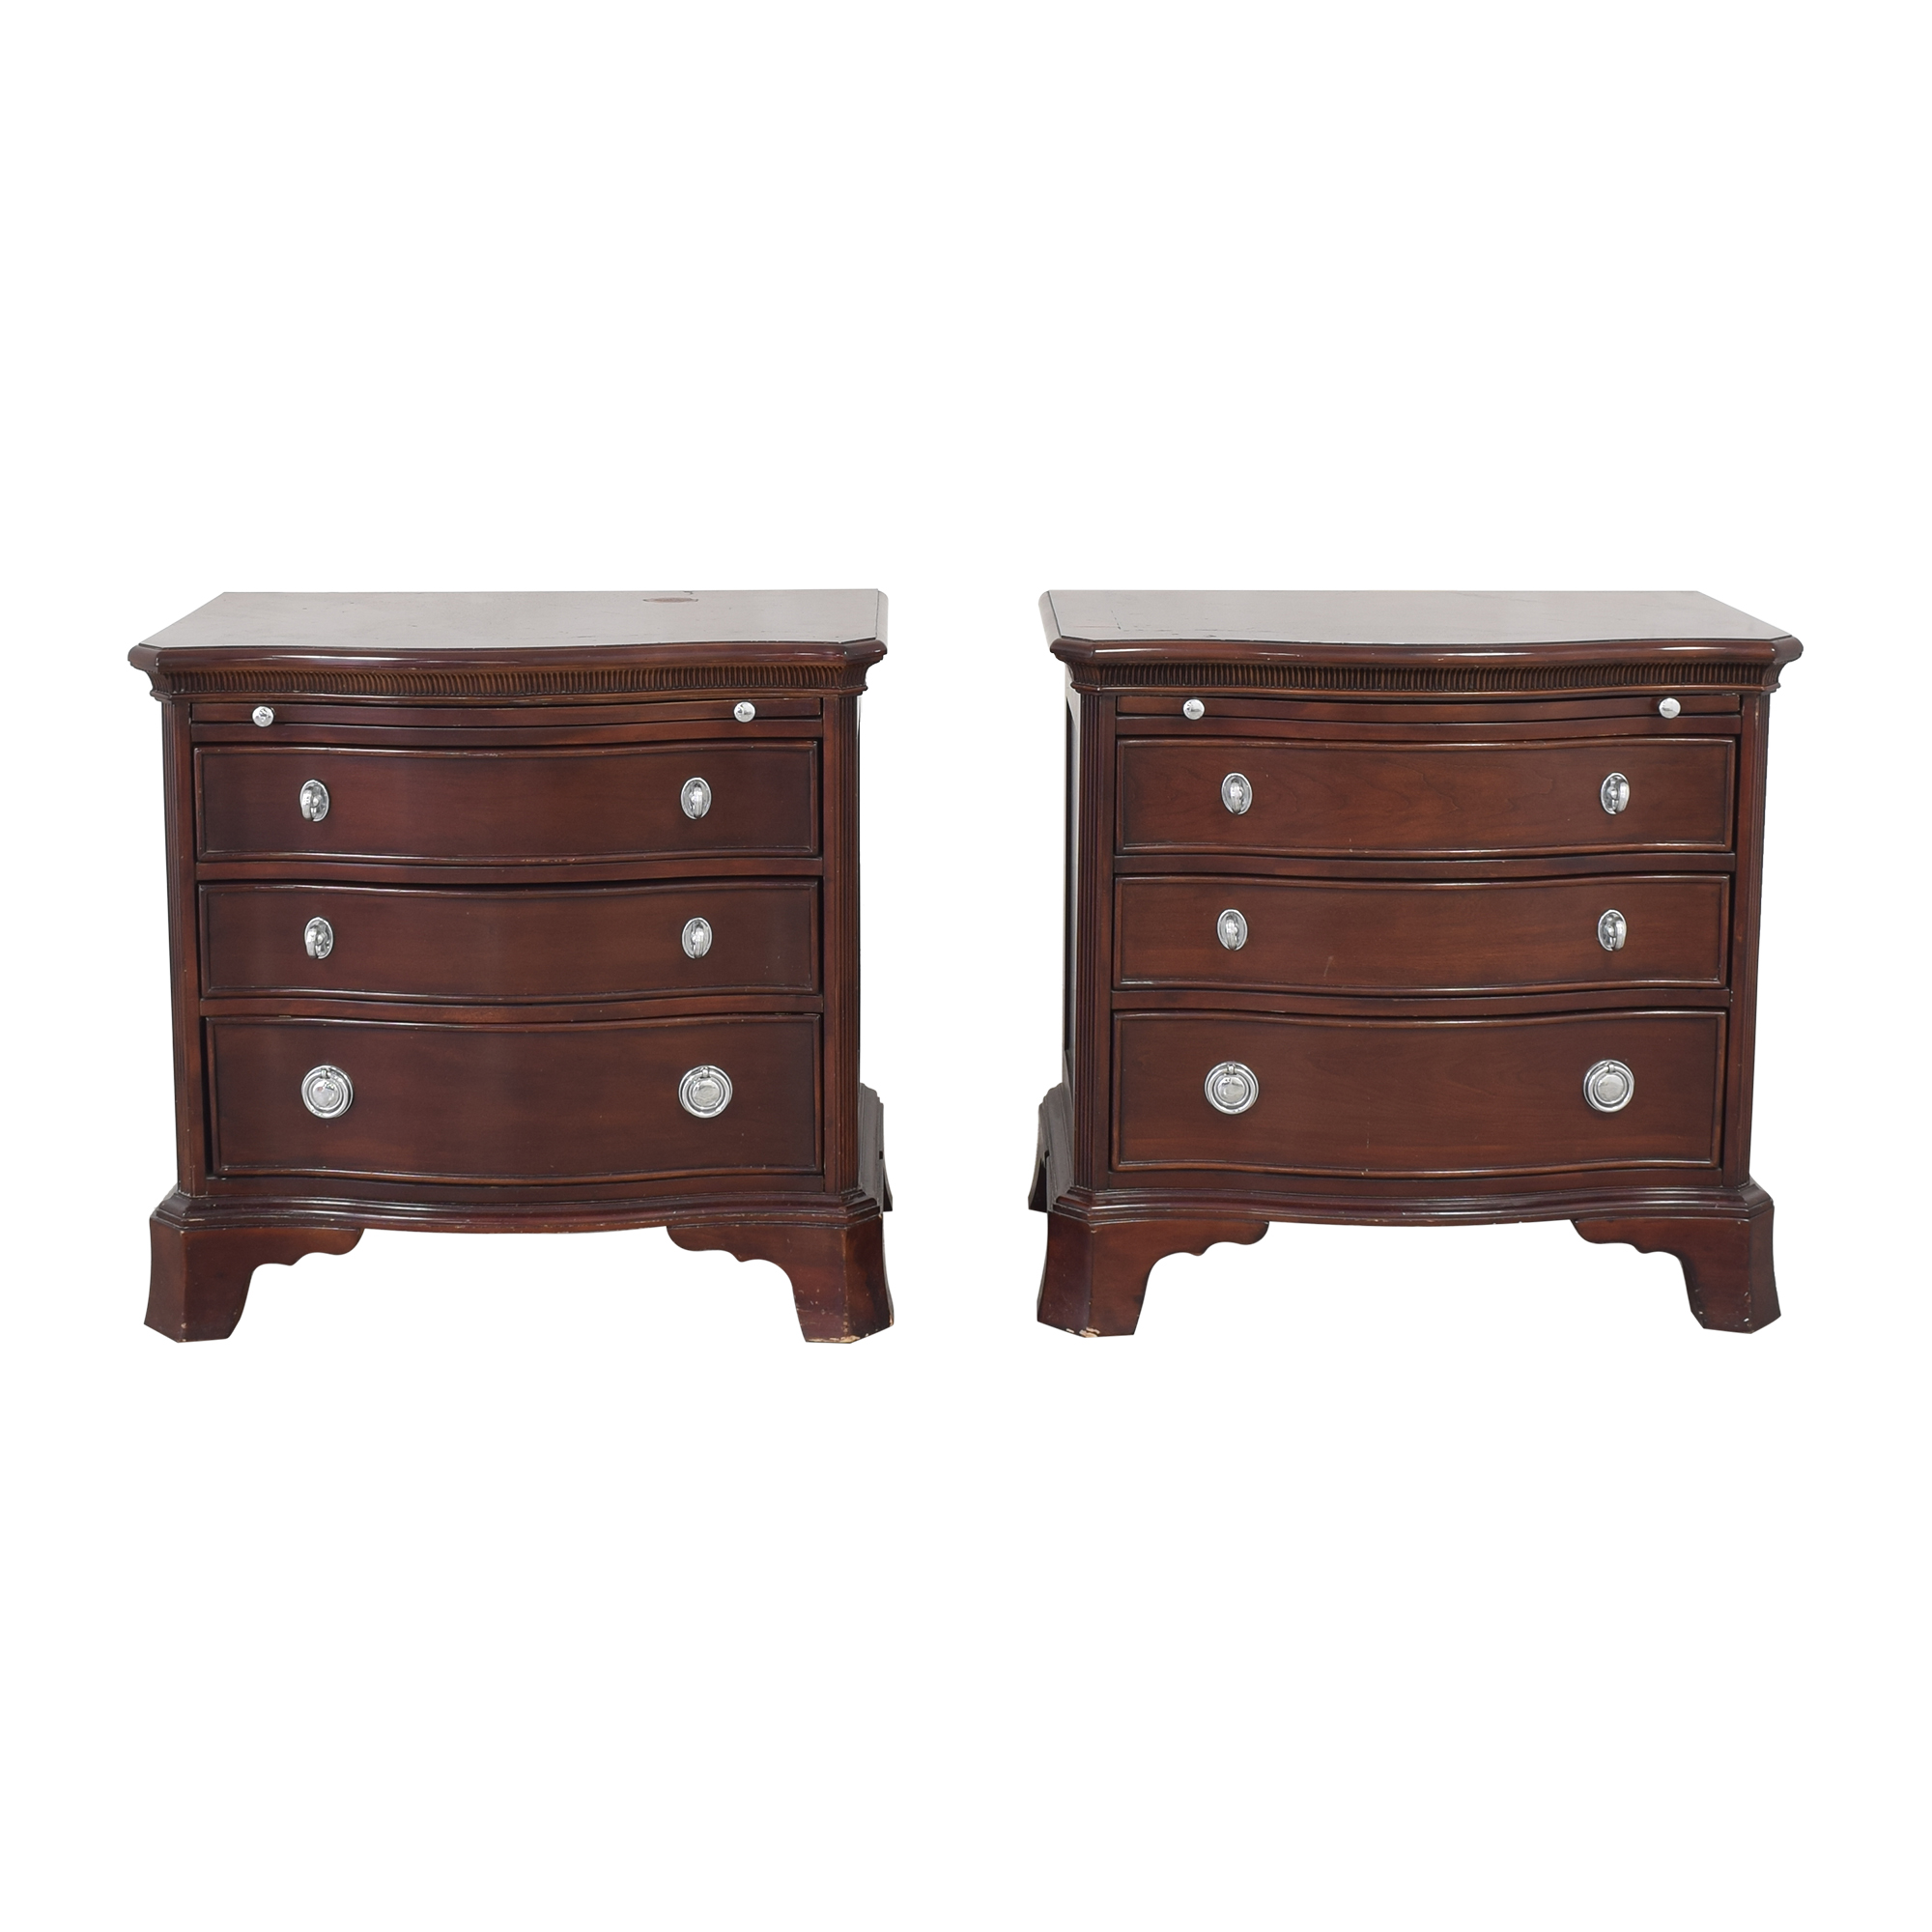 Three Drawer Nightstands dimensions